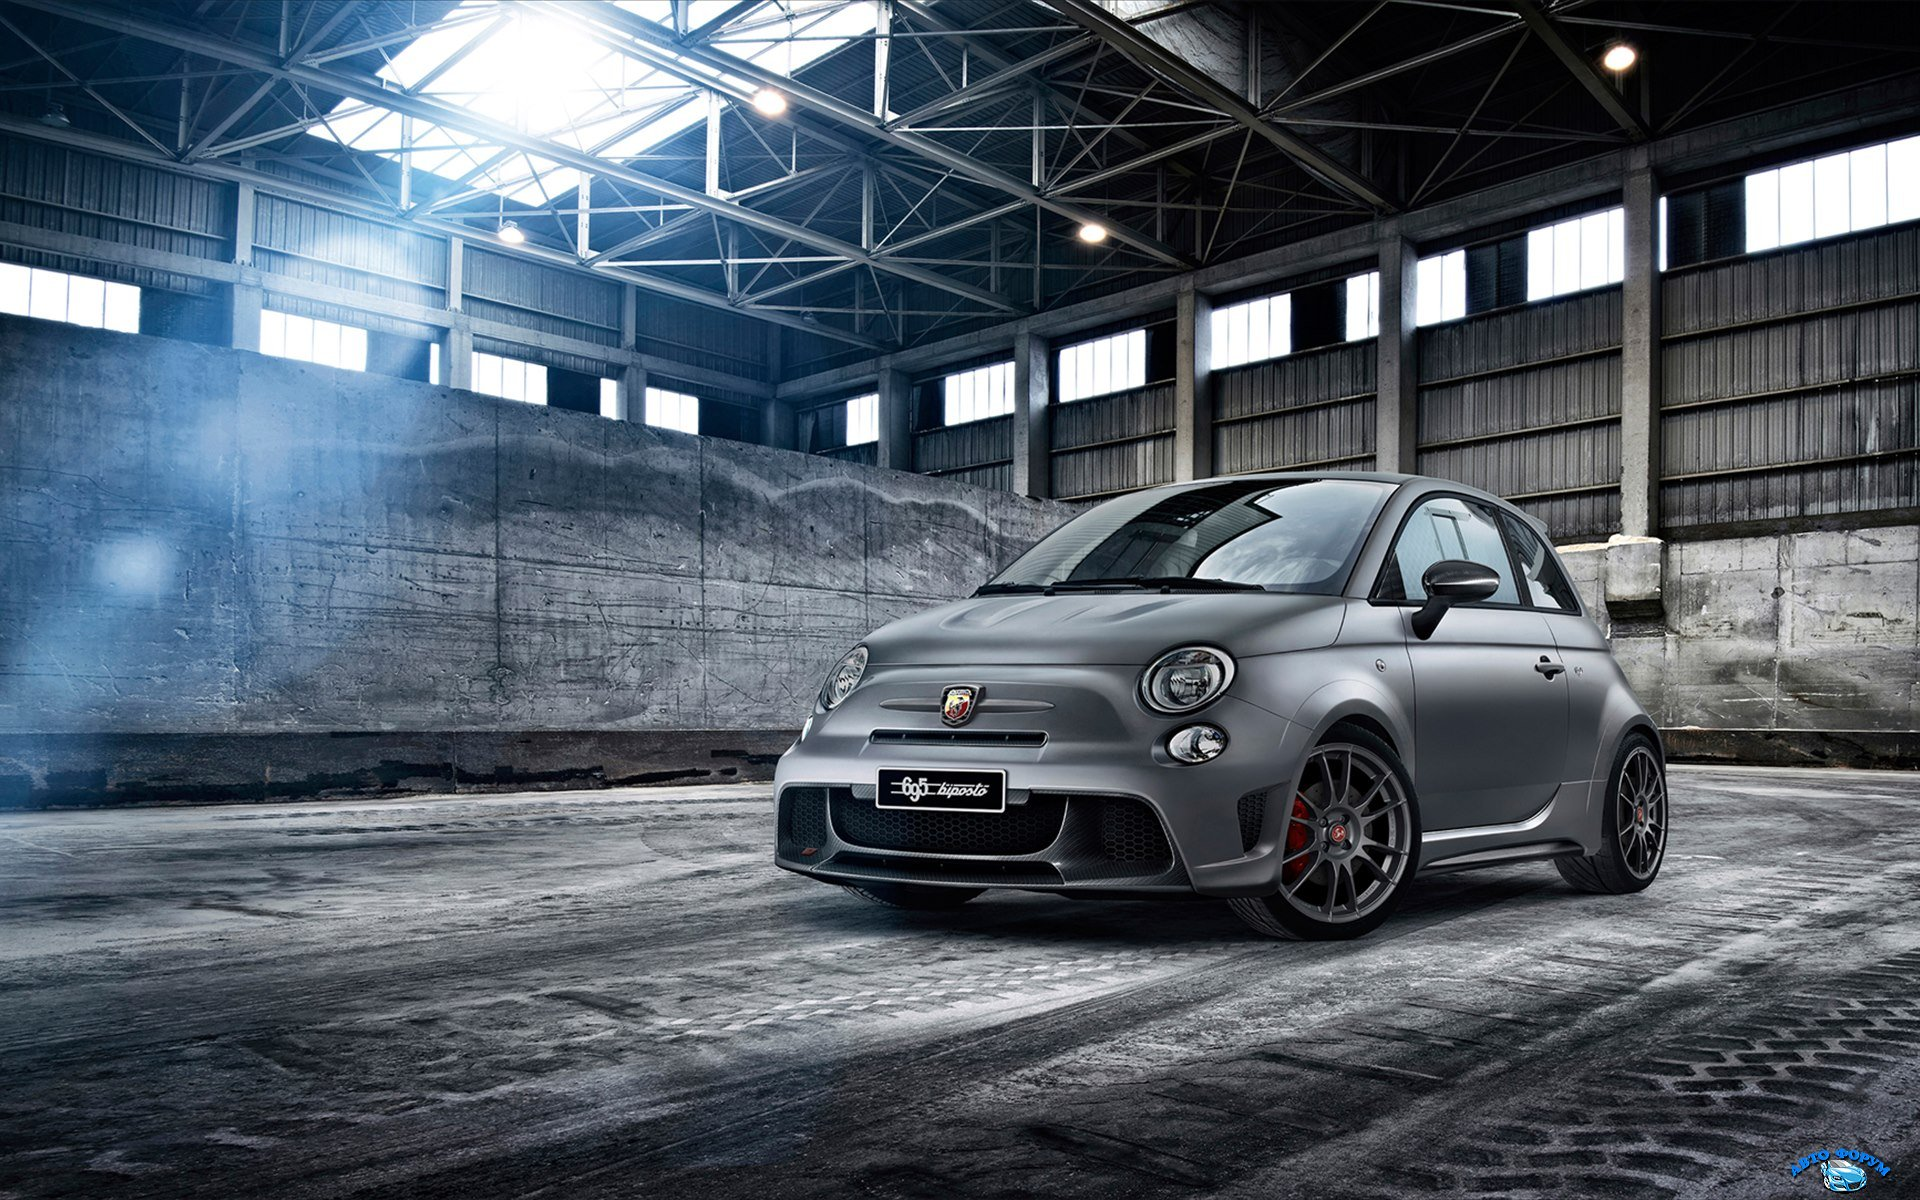 fiat-abarth-695-biposto-2014-widescreen-02.jpg